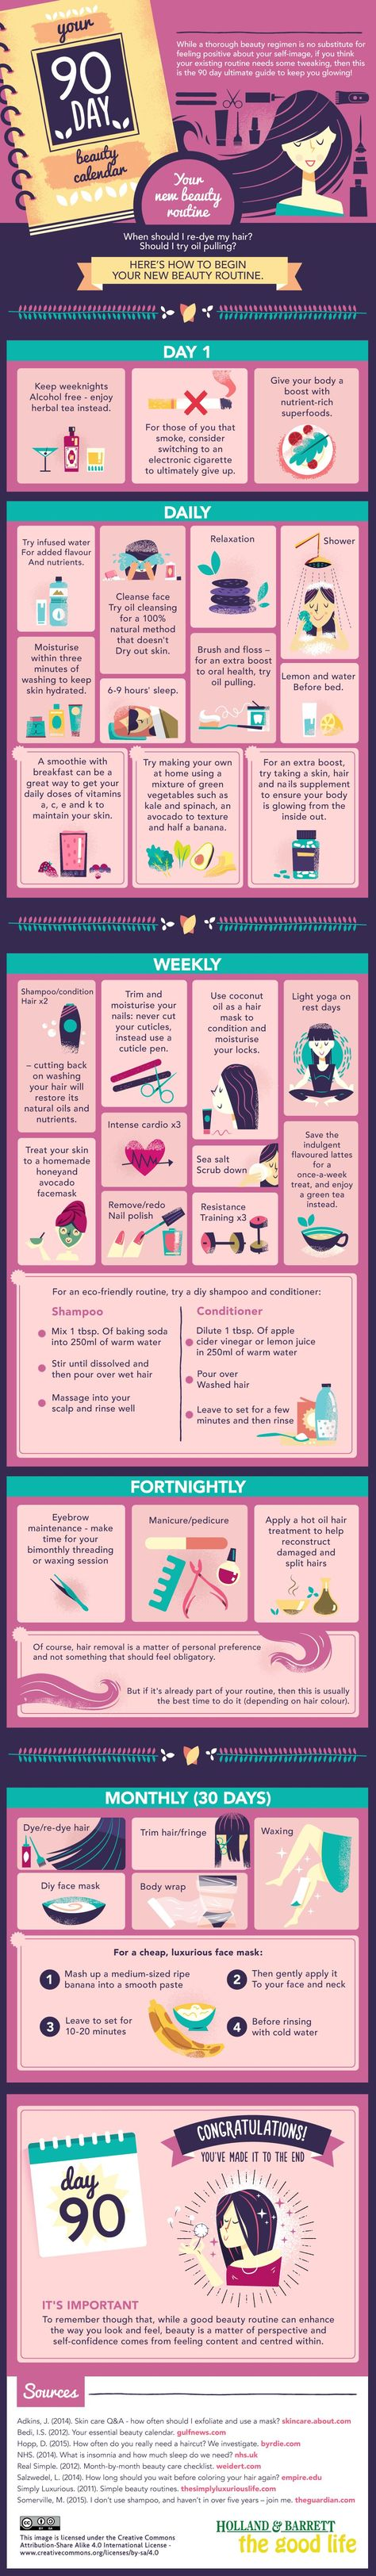 Here's a great 90 day plan to get your body in tip-top shape just in time for…